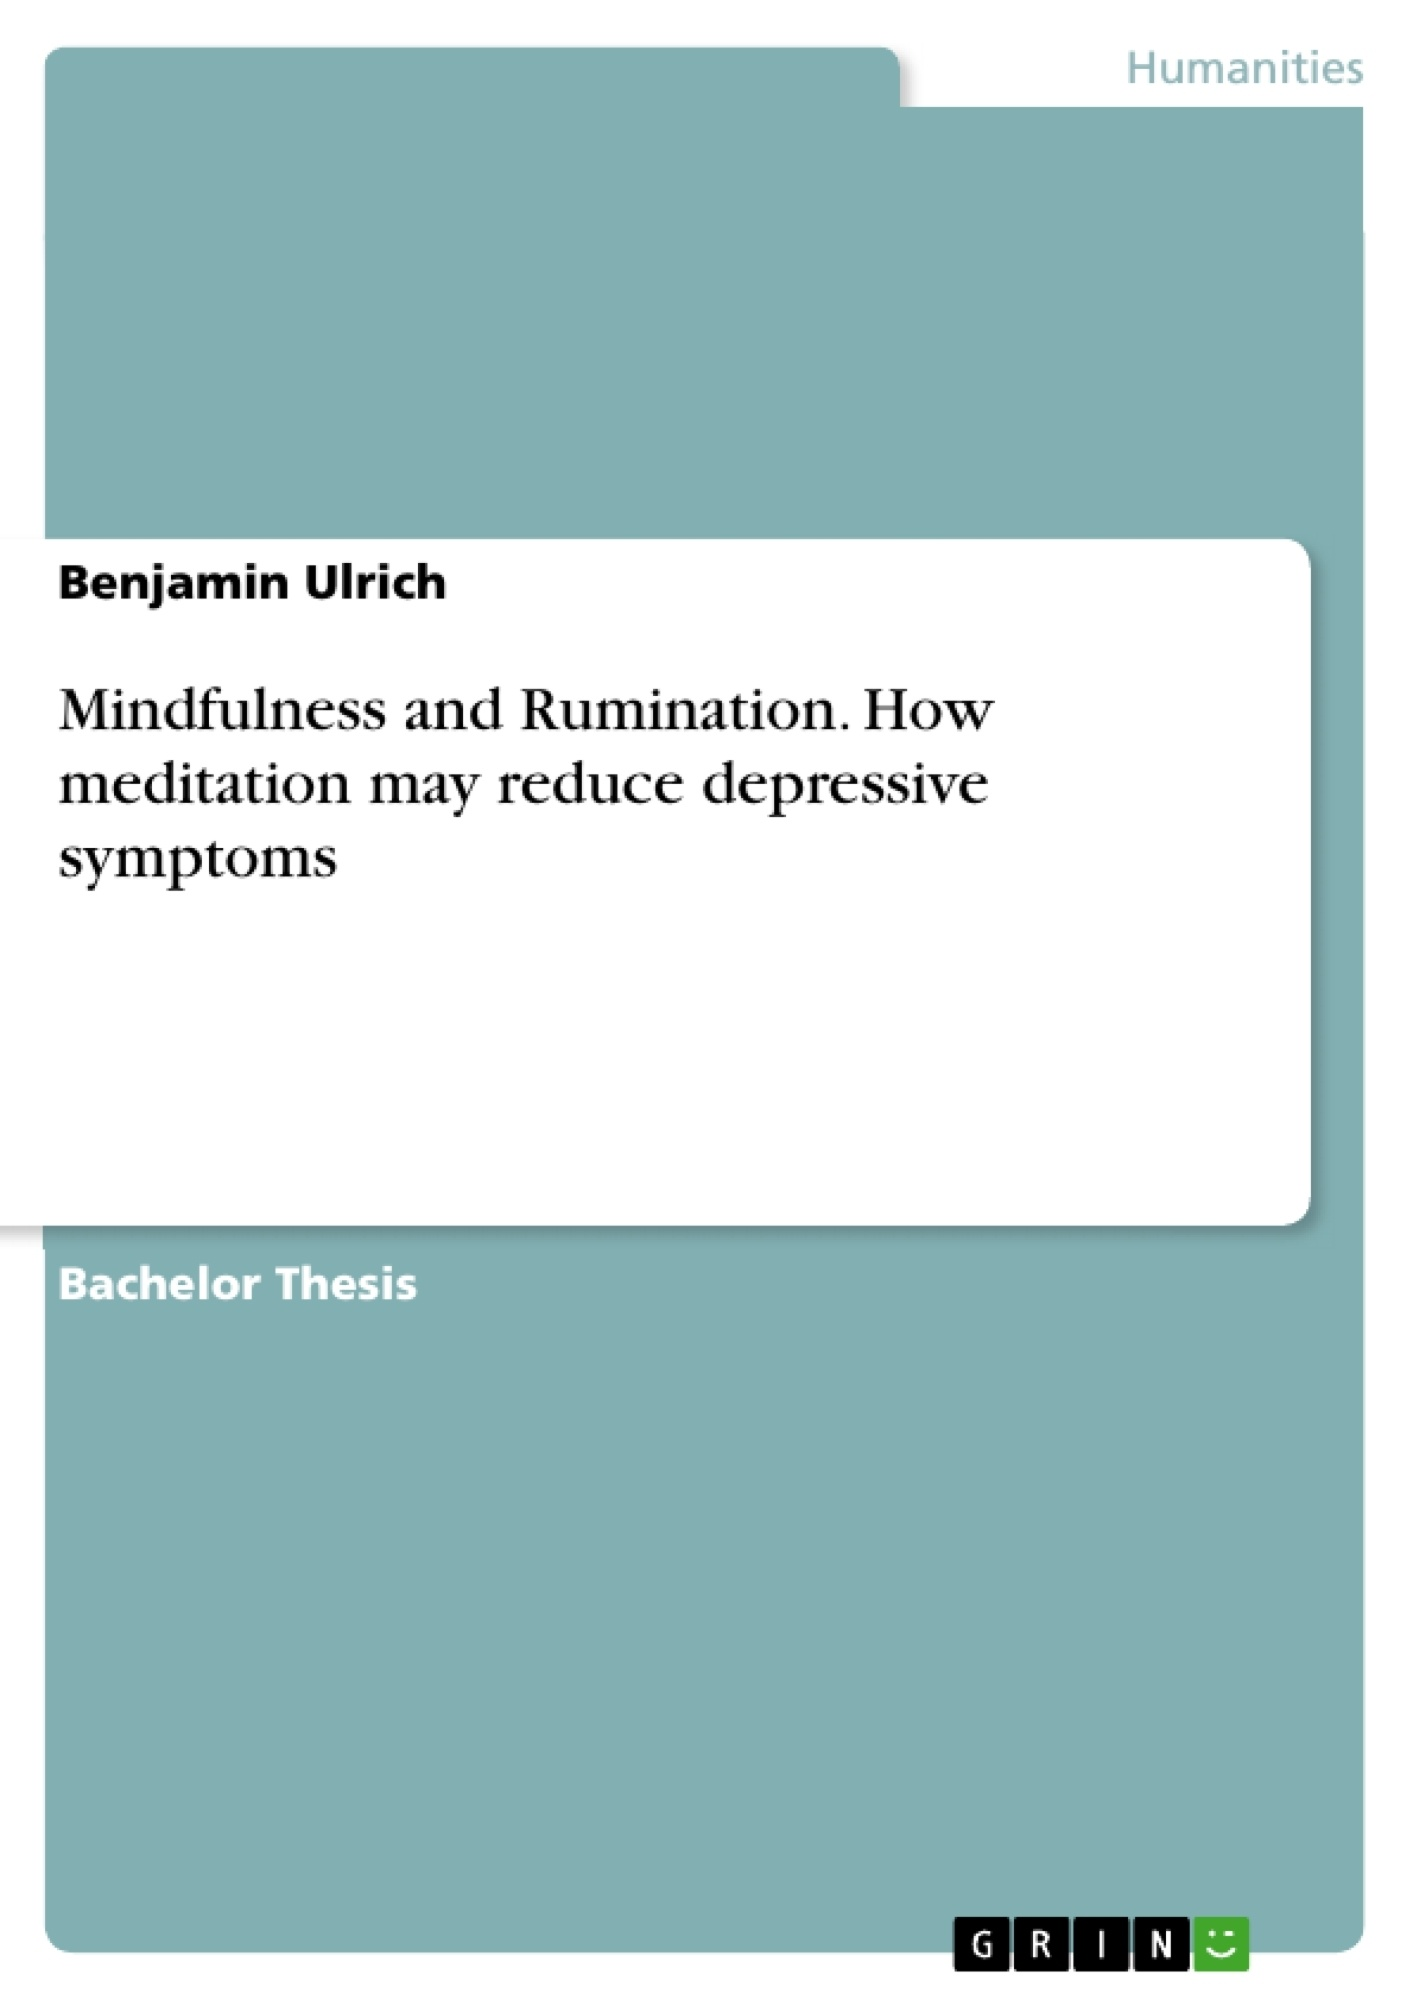 Title: Mindfulness and Rumination. How meditation may reduce depressive symptoms